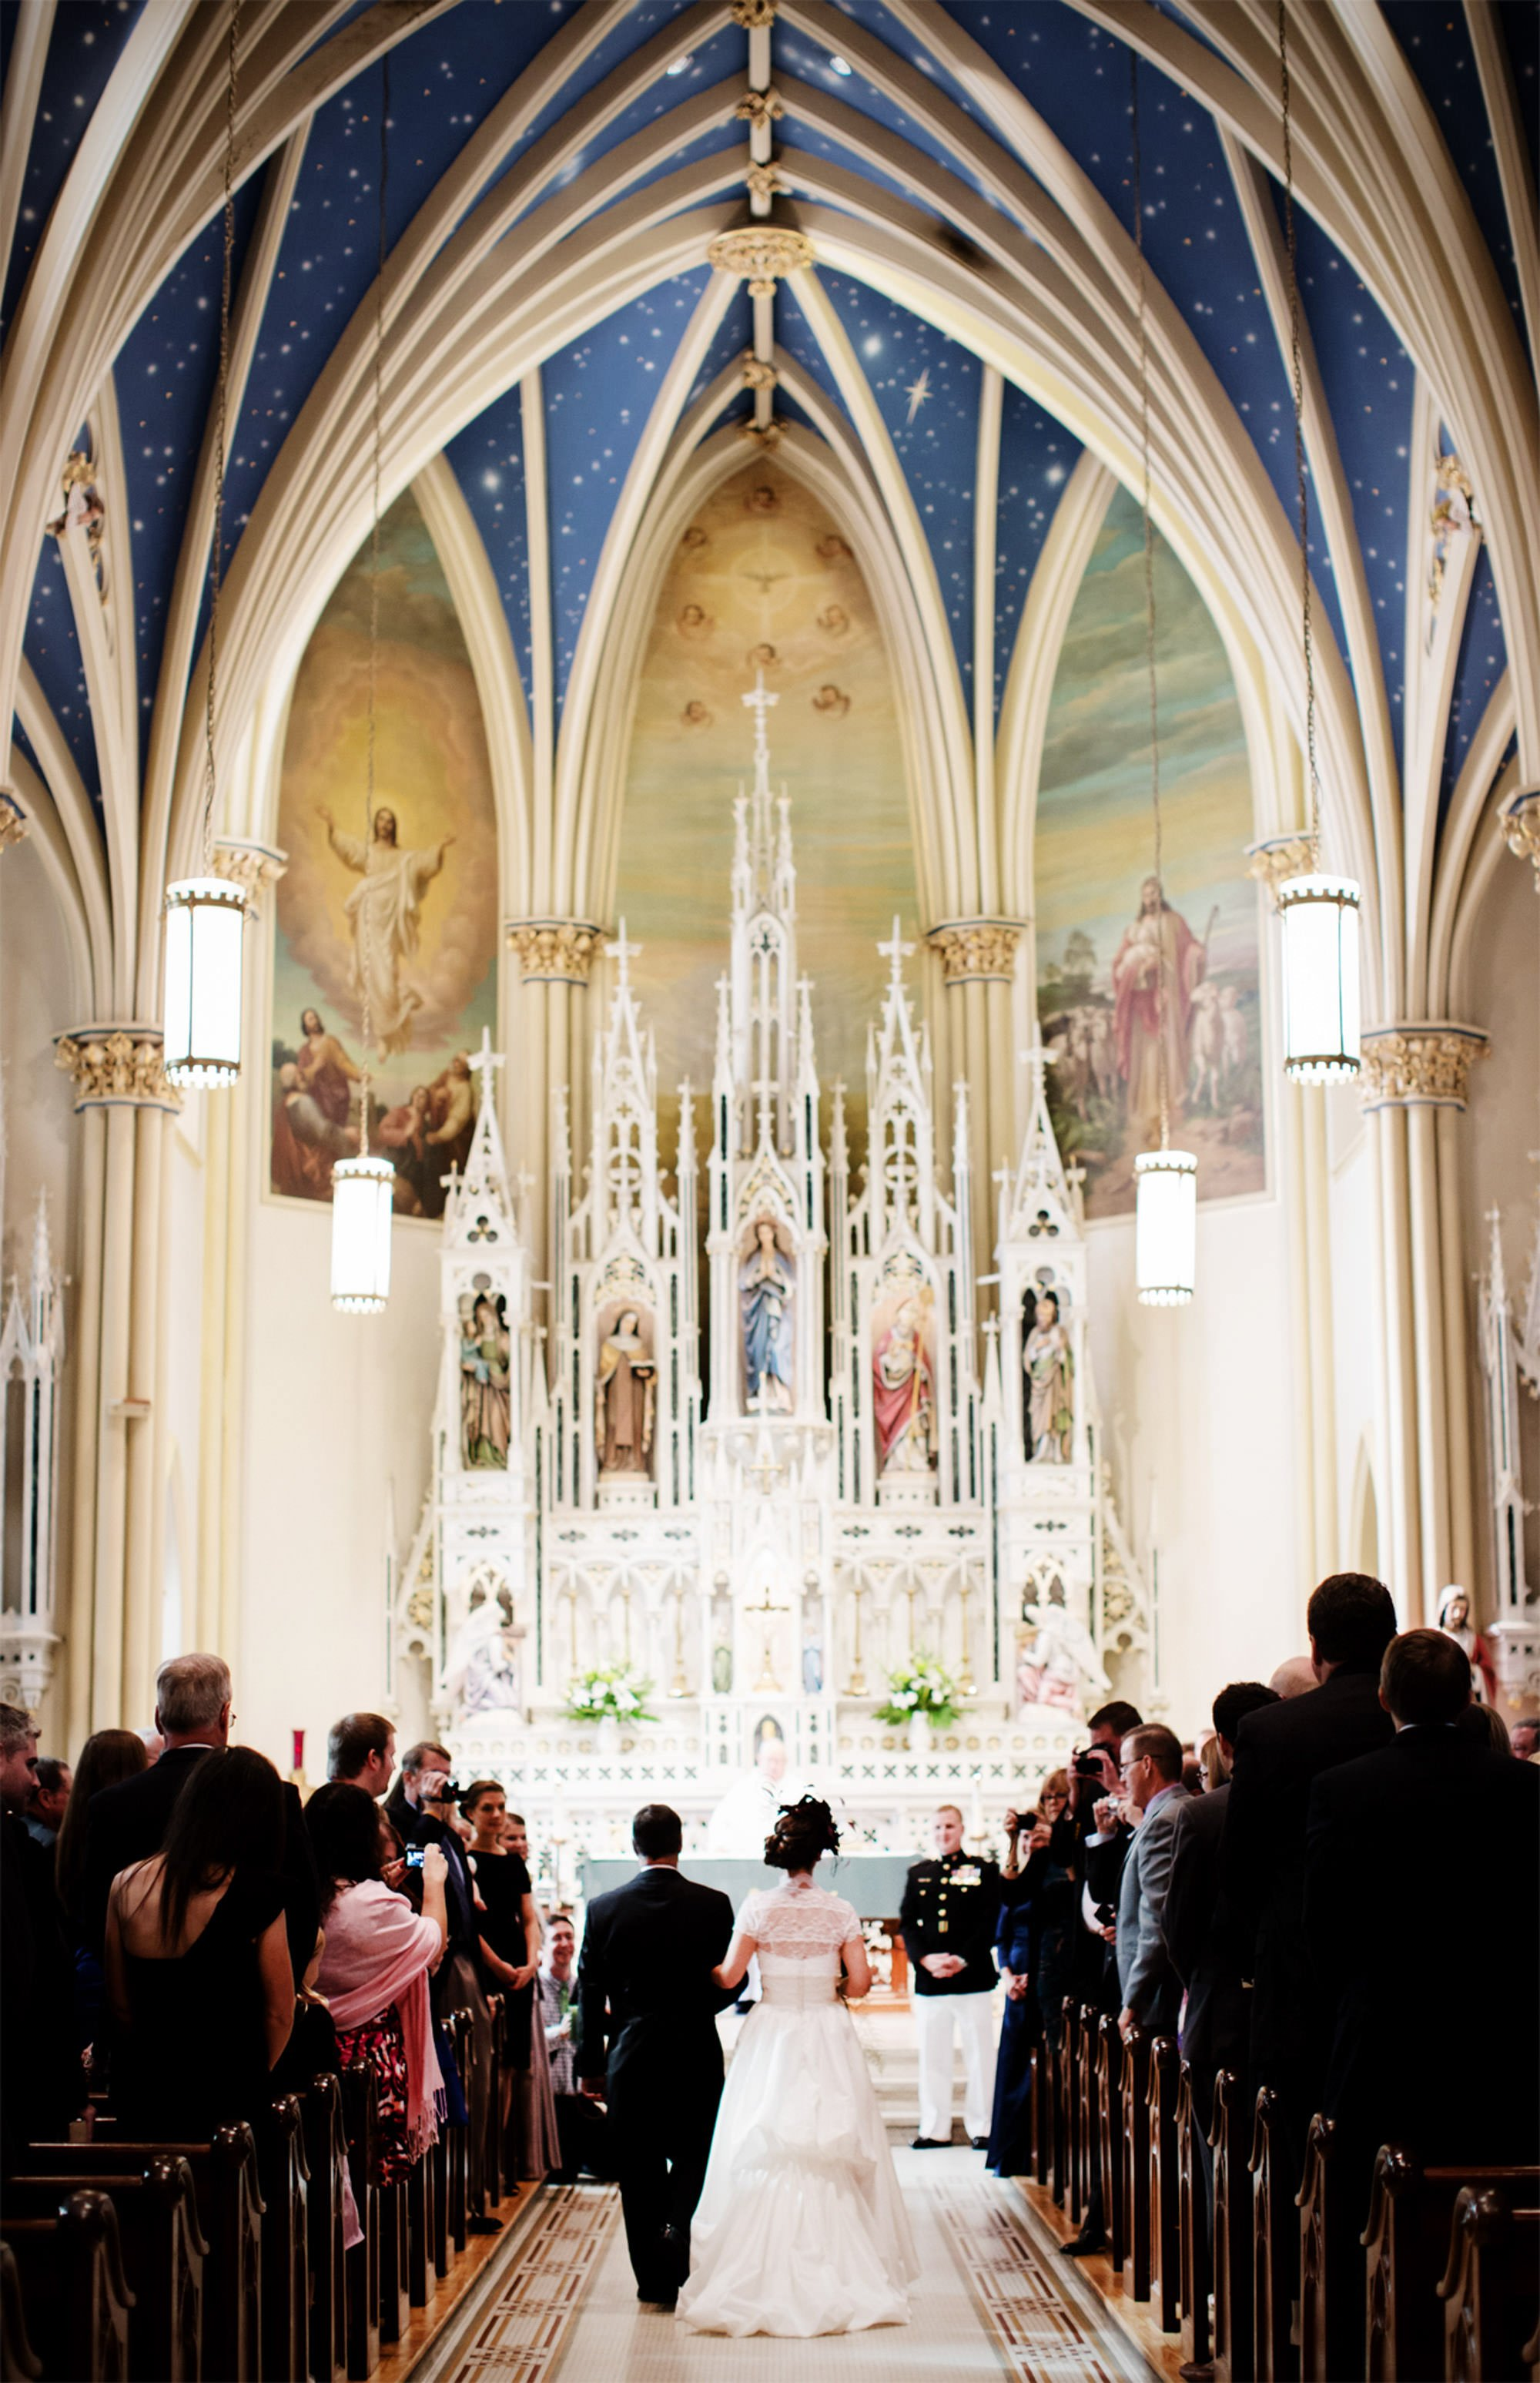 The bride is escorted down the aisle at St. Mary's Catholic Church during her wedding in Annapolis.